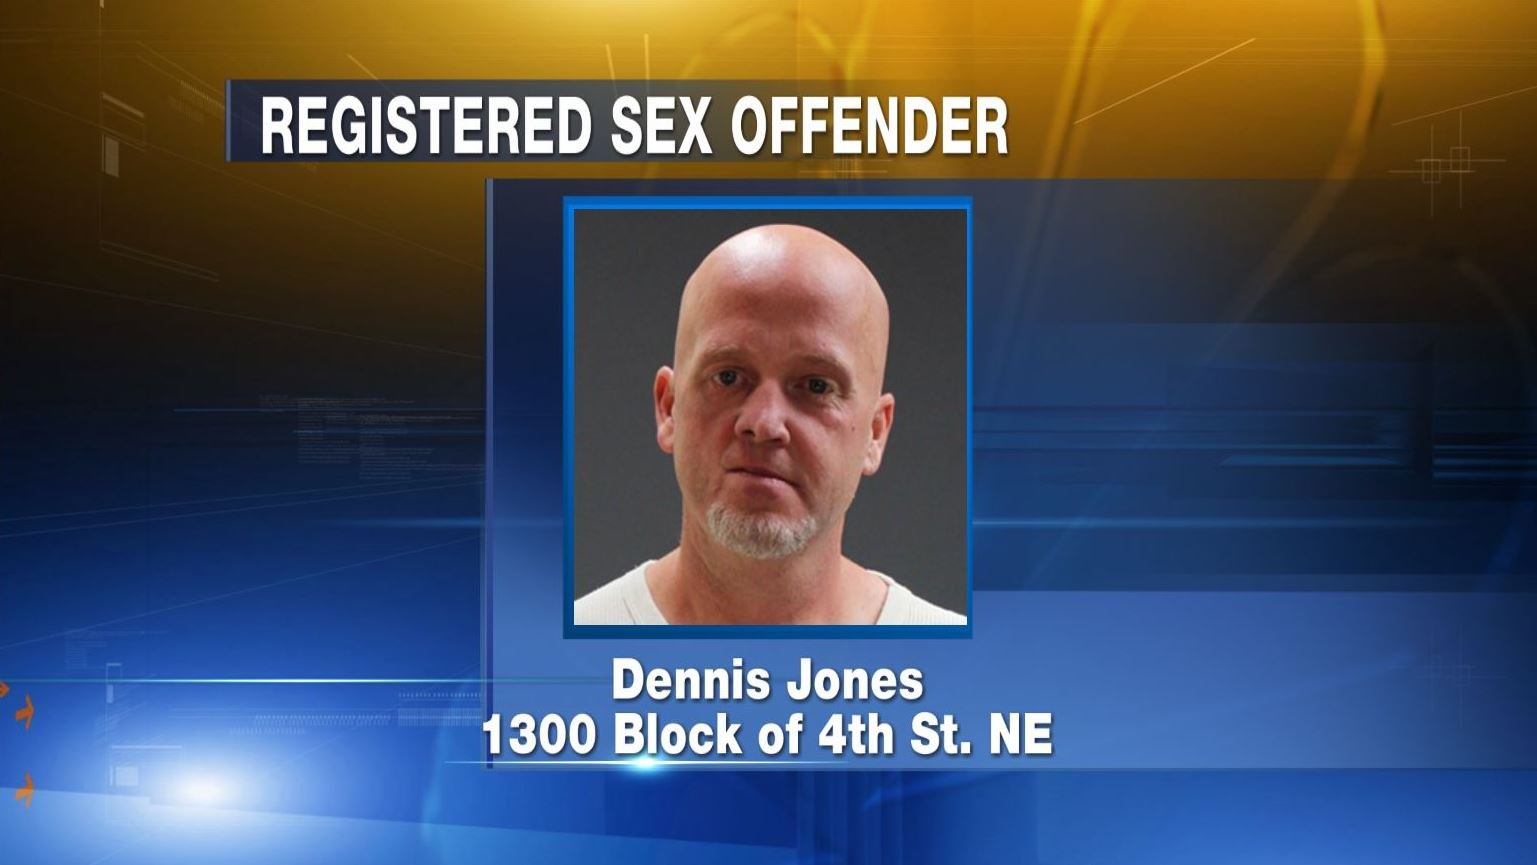 And Offender registered sex wisconsin